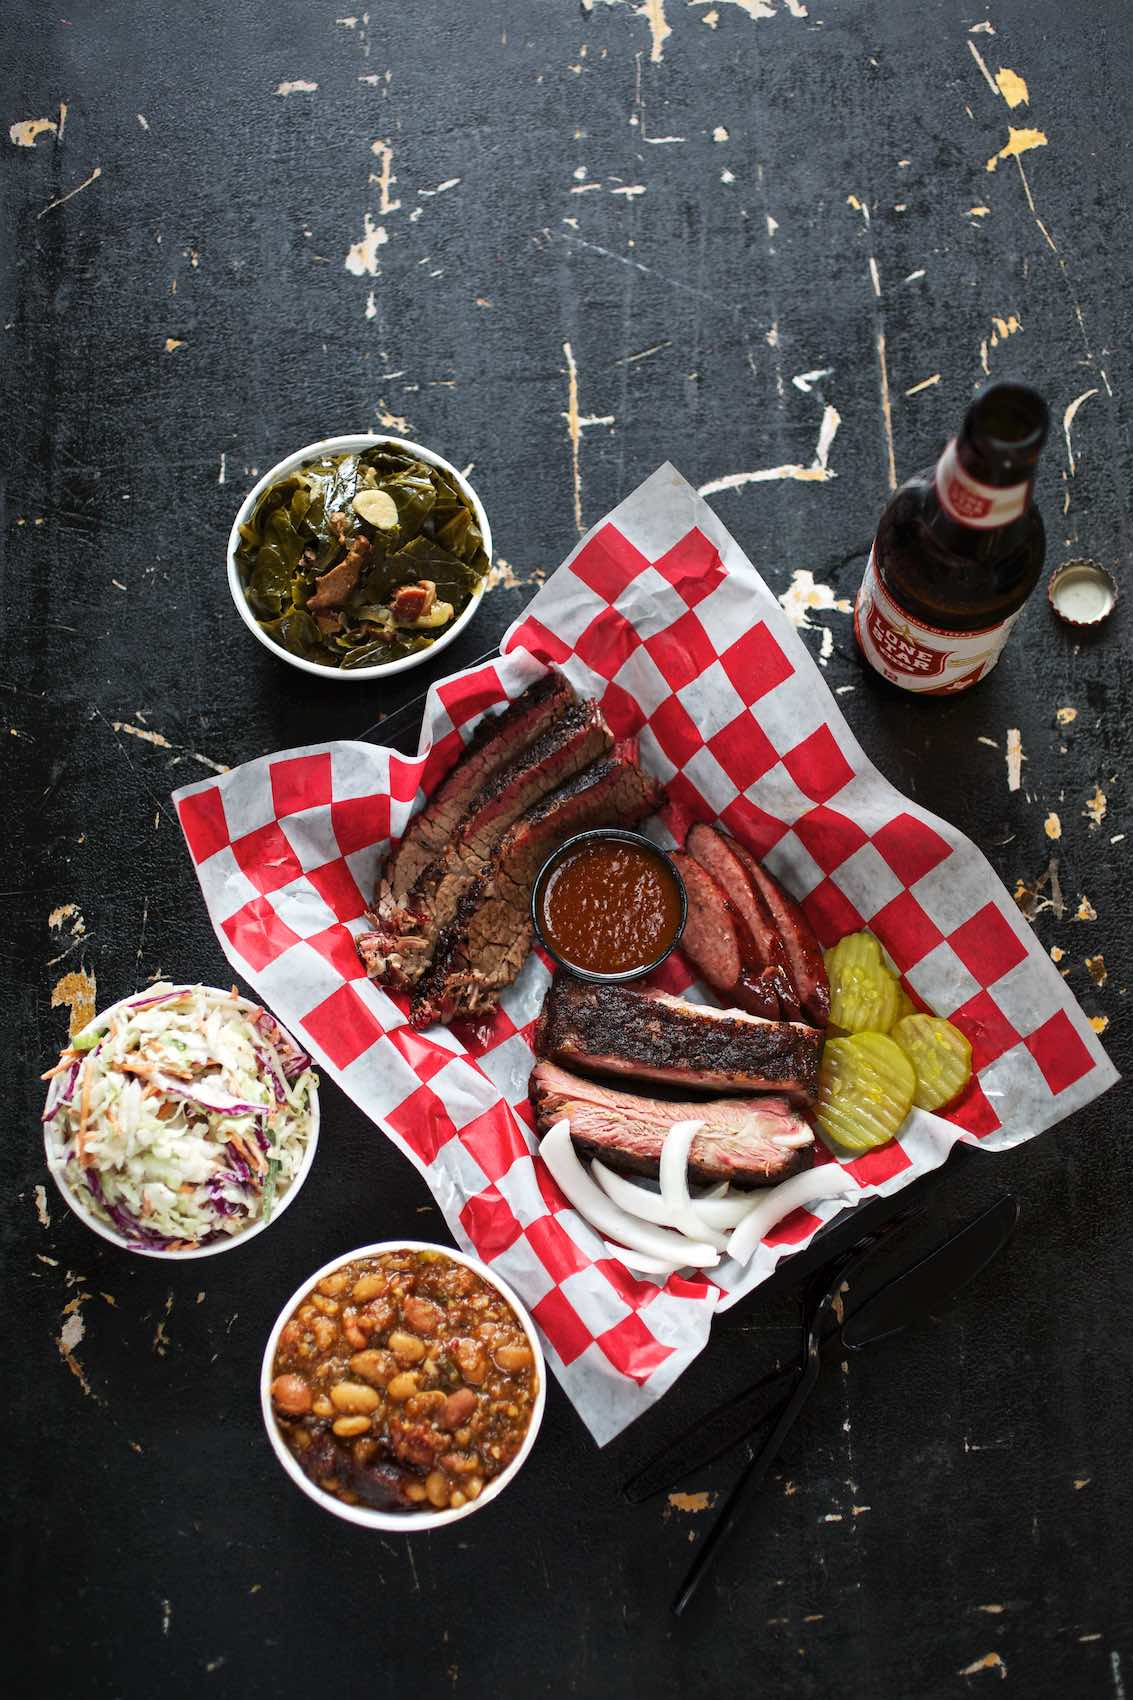 Jody Horton Photography - Barbecue spread and bottled Lonestar Beer.